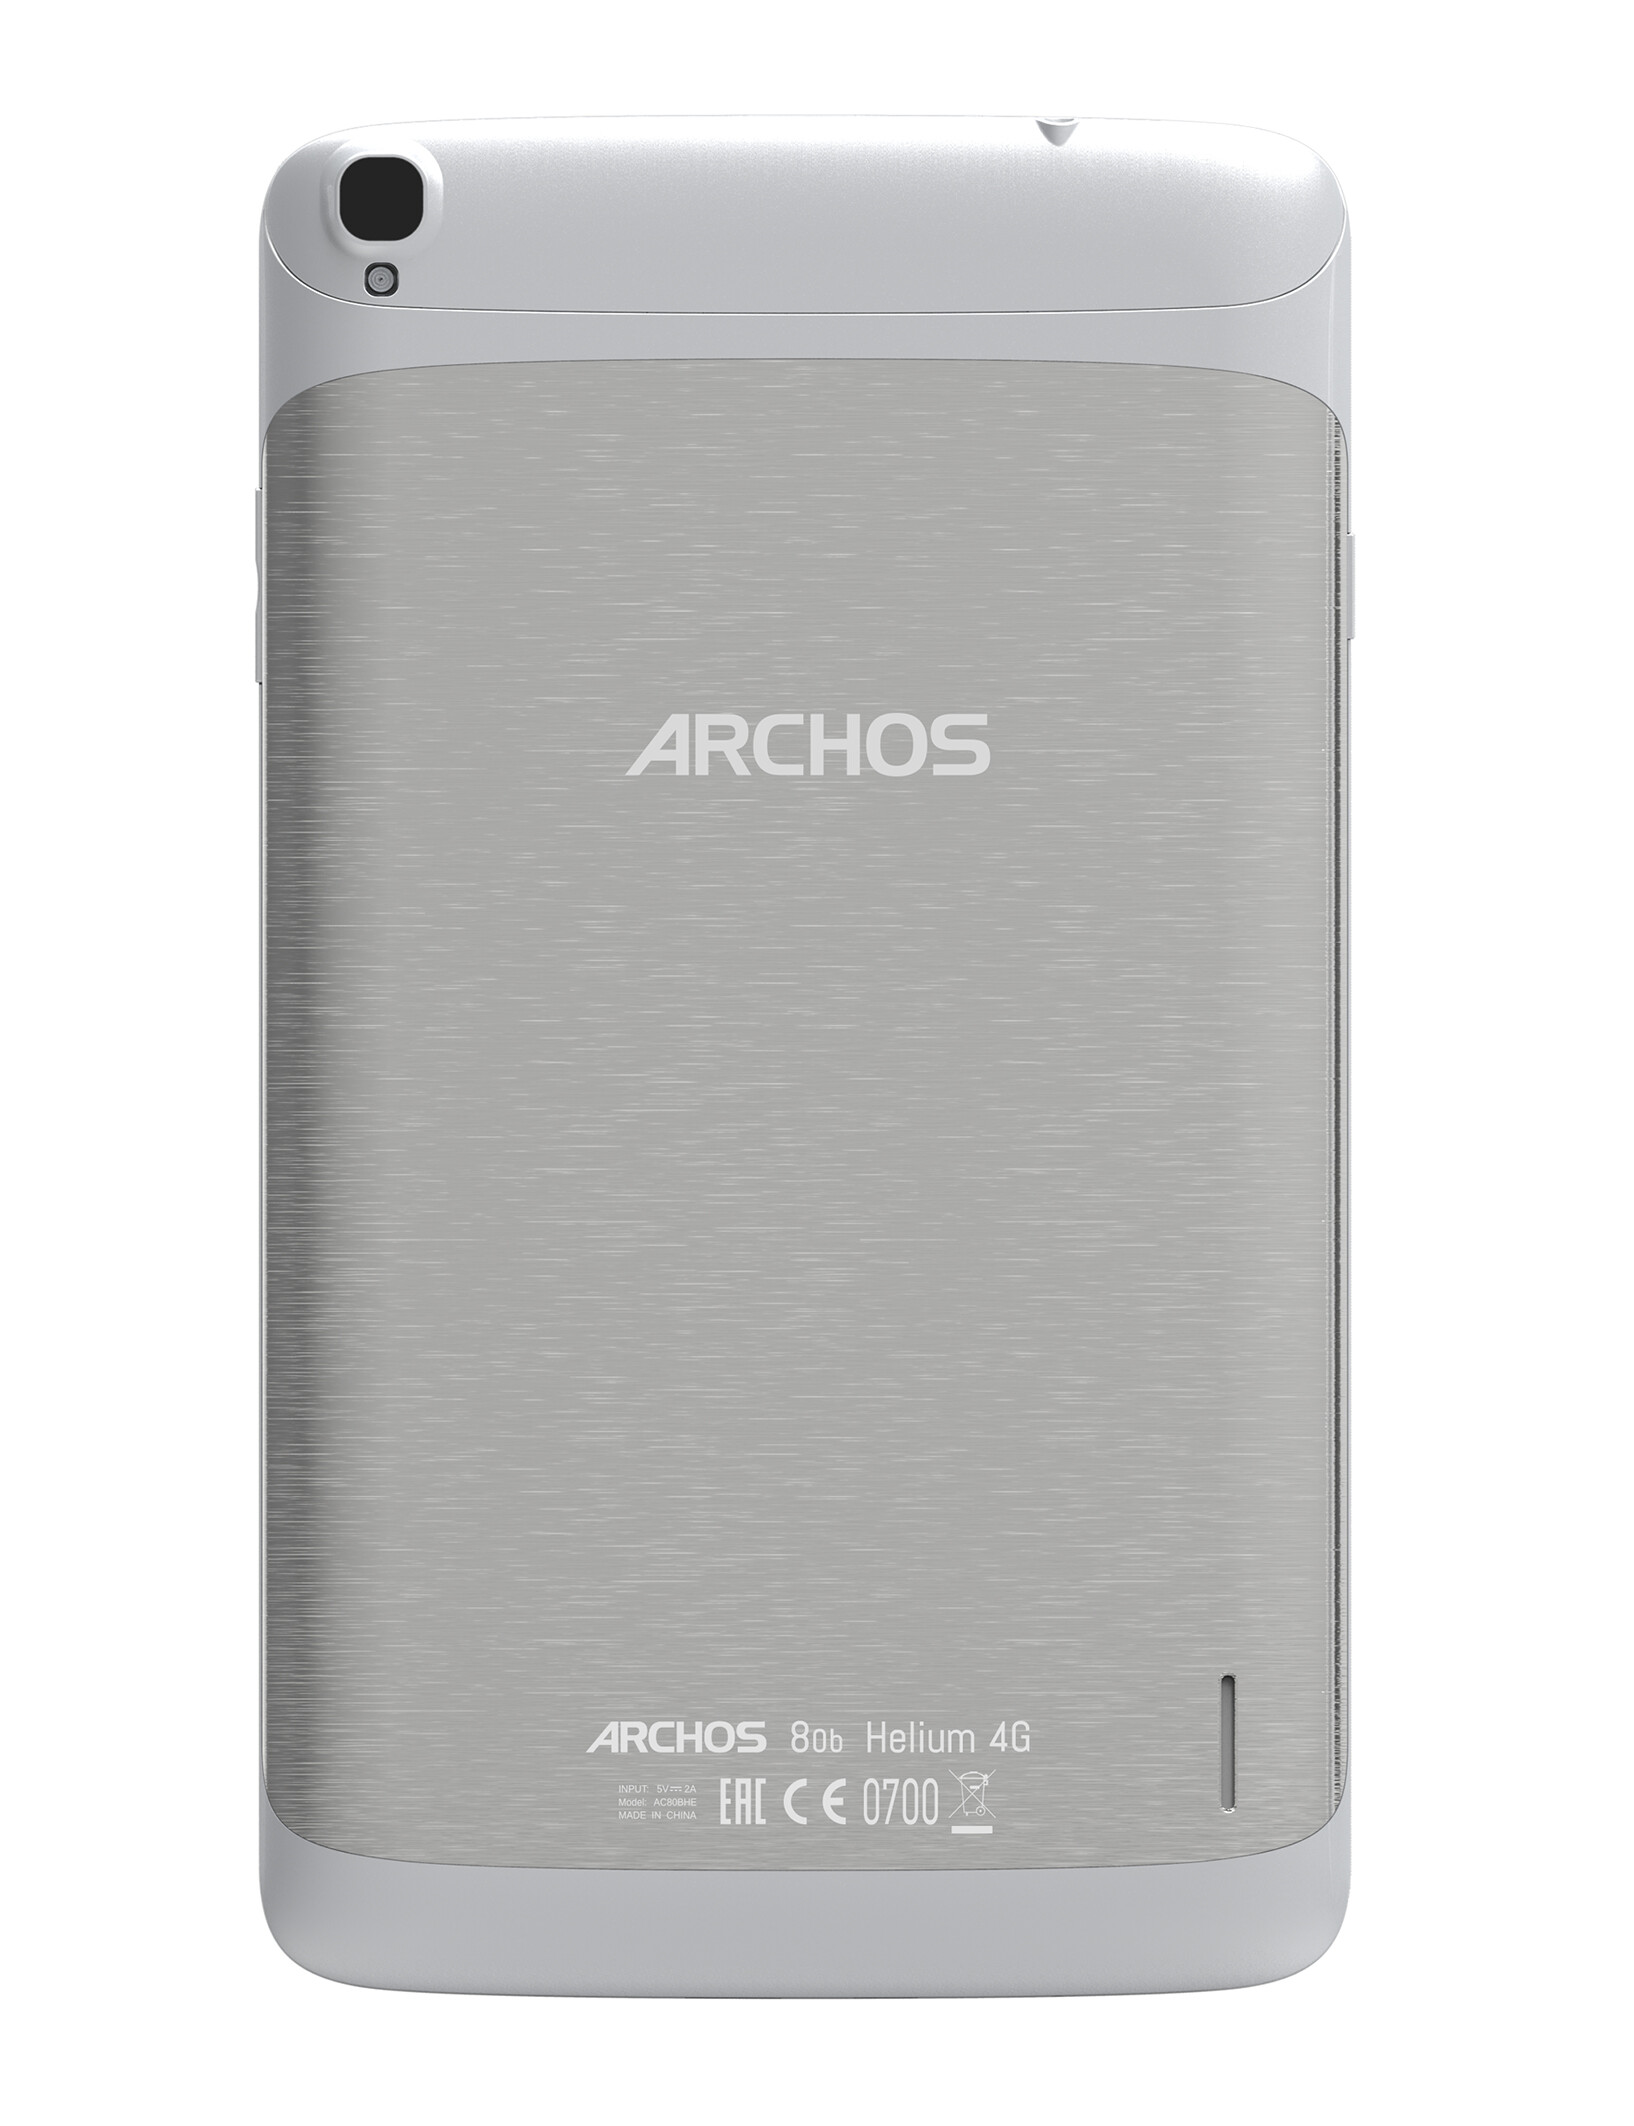 archos 80b helium 4g specs. Black Bedroom Furniture Sets. Home Design Ideas